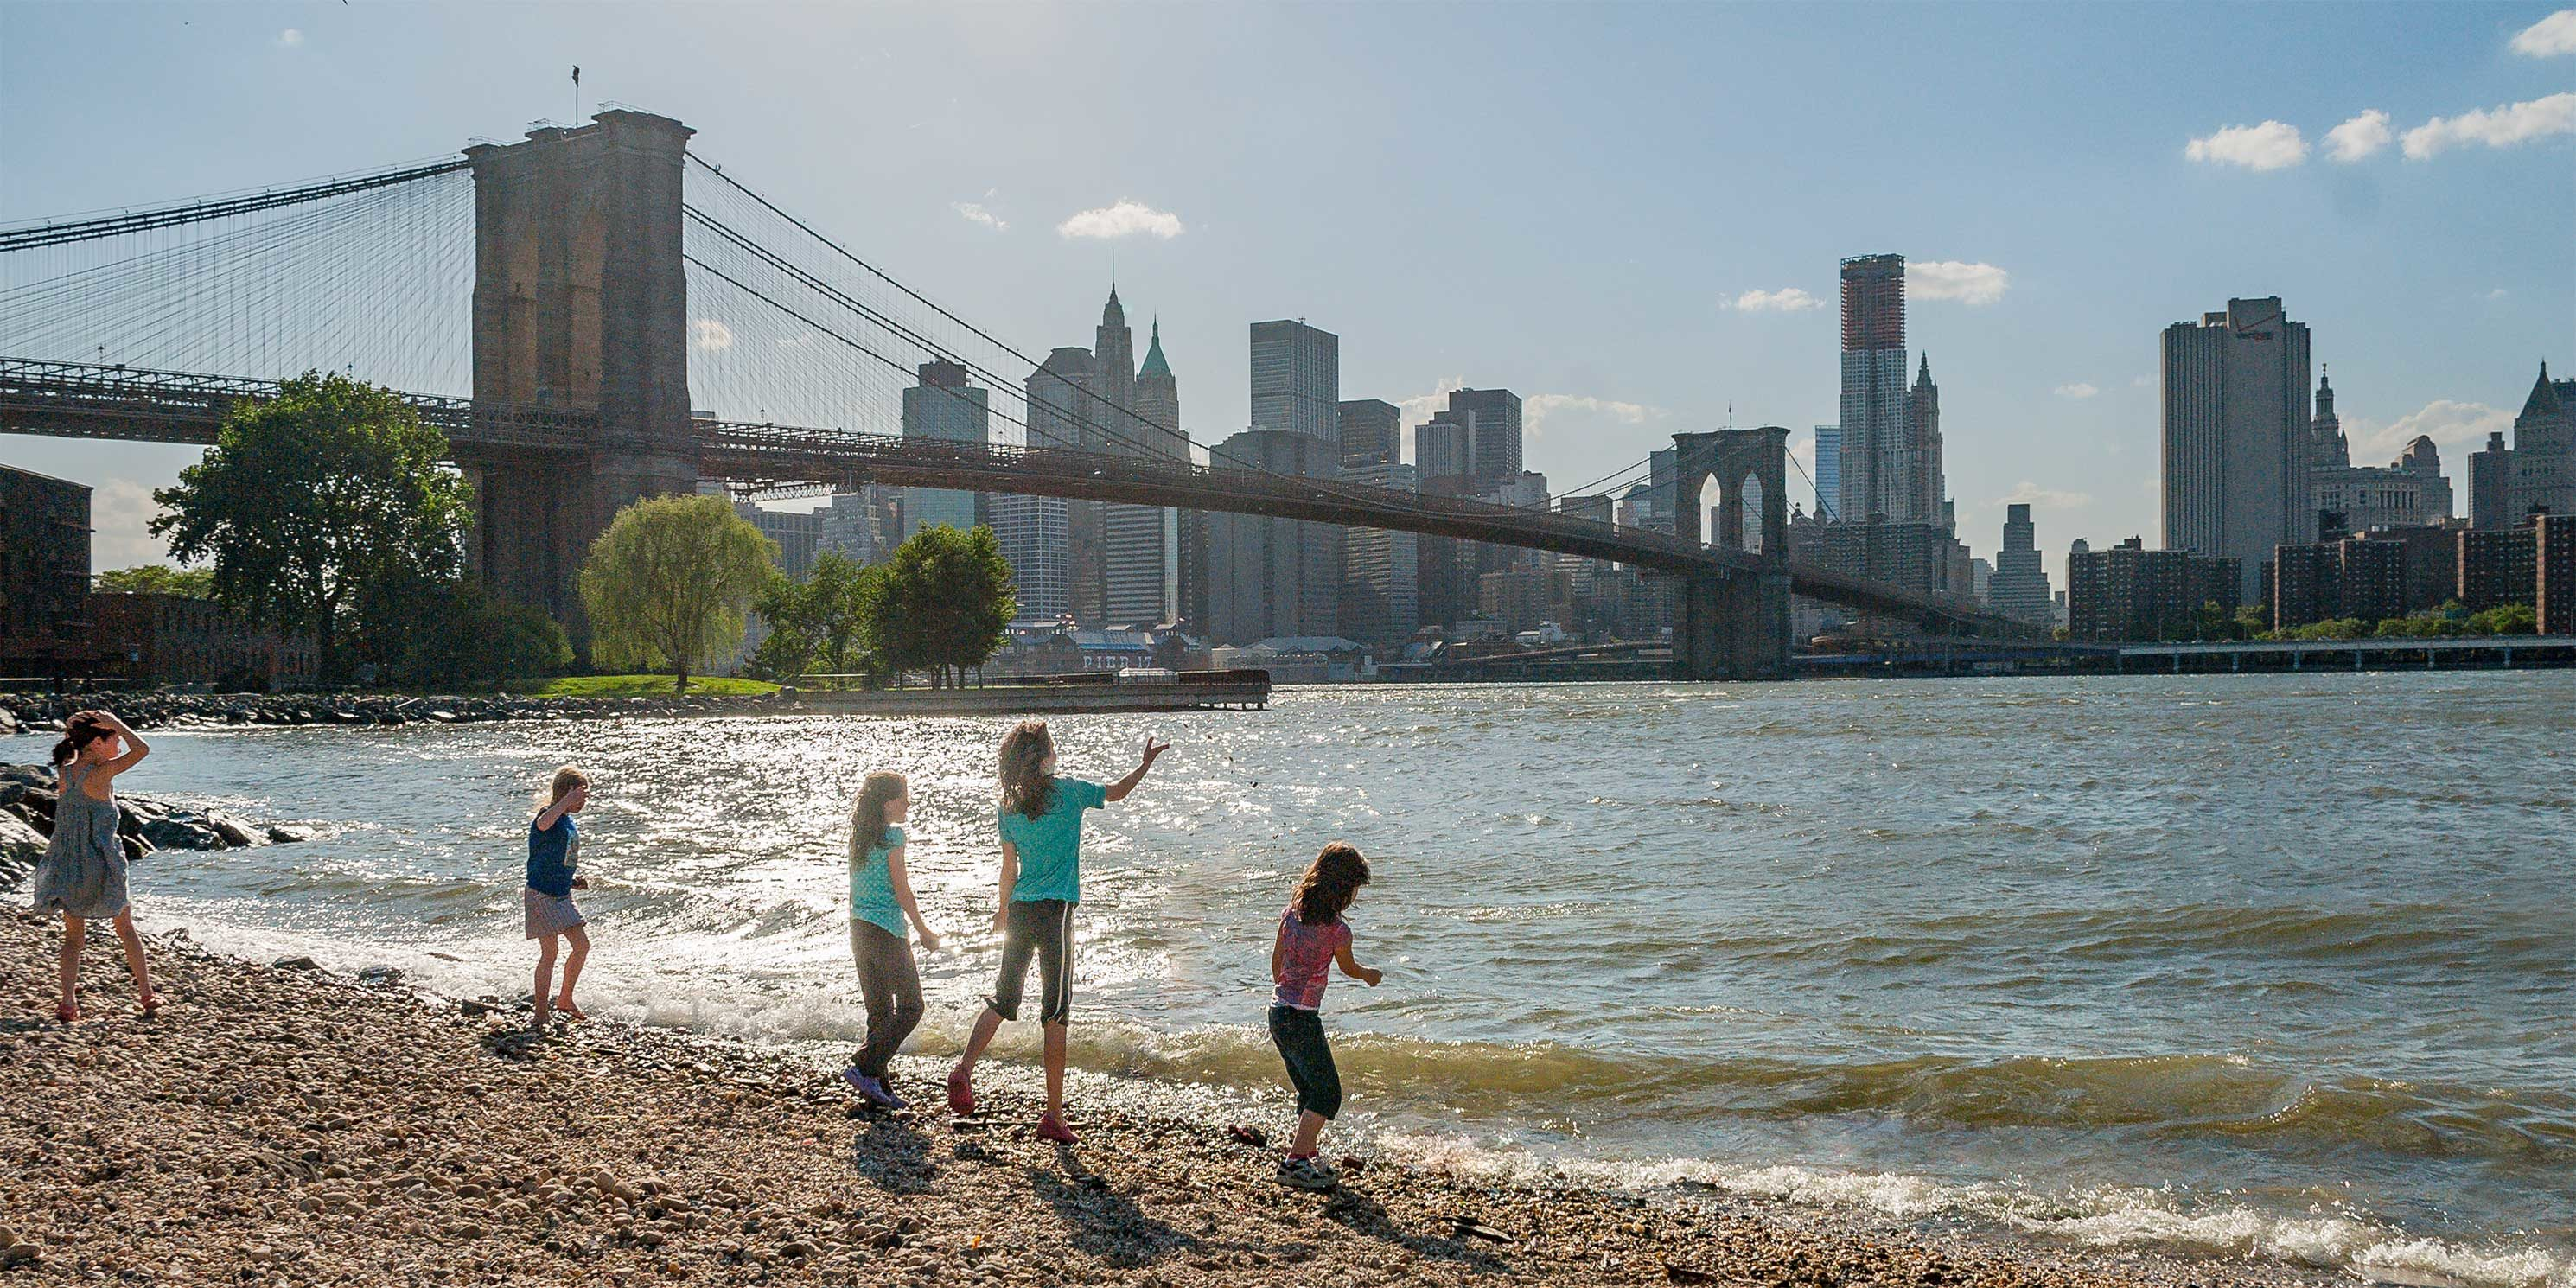 children play on the shore near the Brooklyn Bridge. Photo: Giles Ashford.